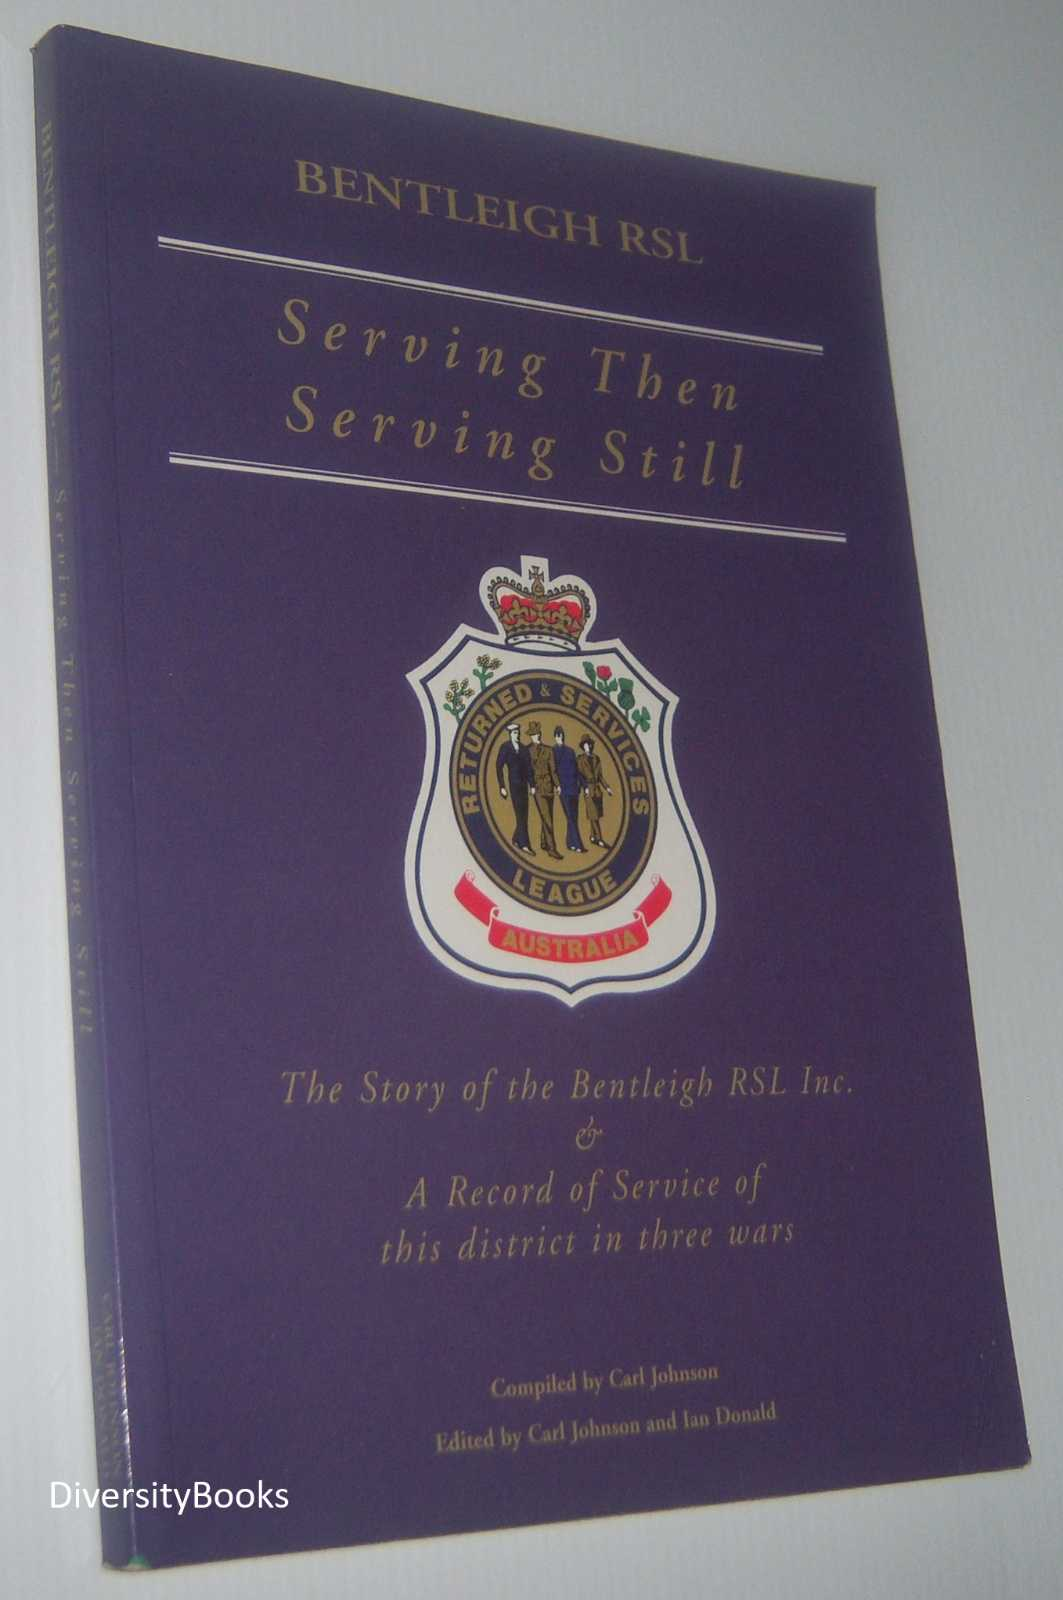 Image for SERVING THEN SERVING STILL: The Story of the Bentleigh RSL Inc. and a Record of Service in This District in Three Wars